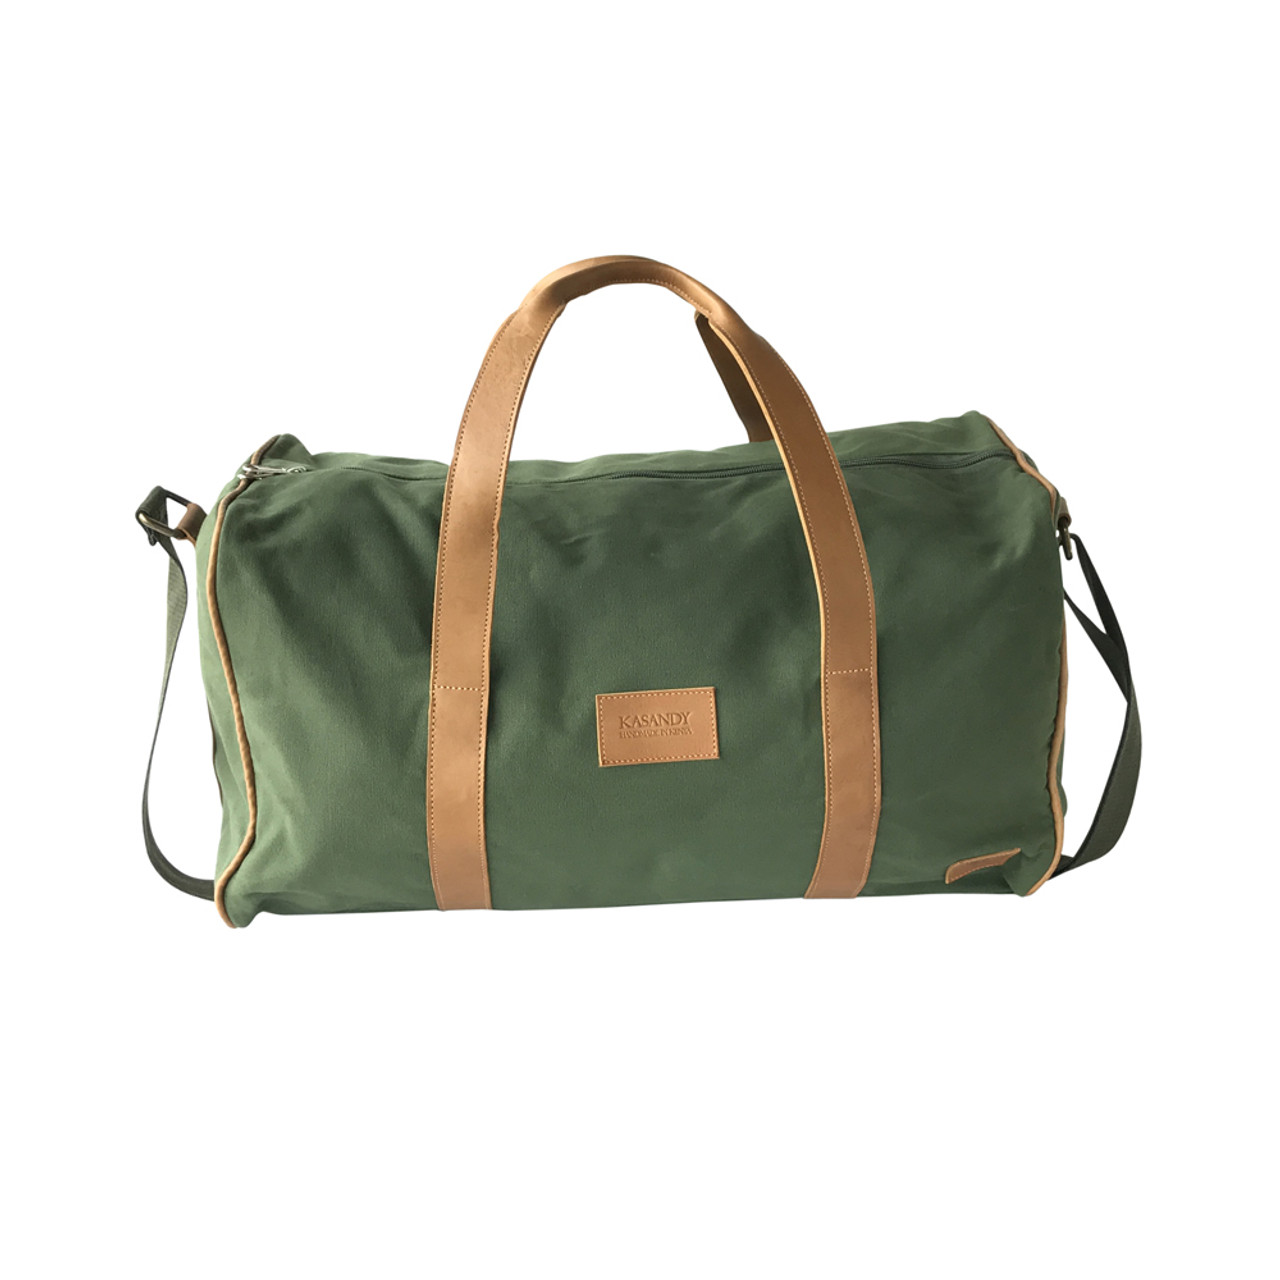 Majestic Travel Weekender Duffle Bag Olive Green Canvas Lear Large Large Duffle Bags College Large Duffle Bags Uk baby Large Duffle Bags